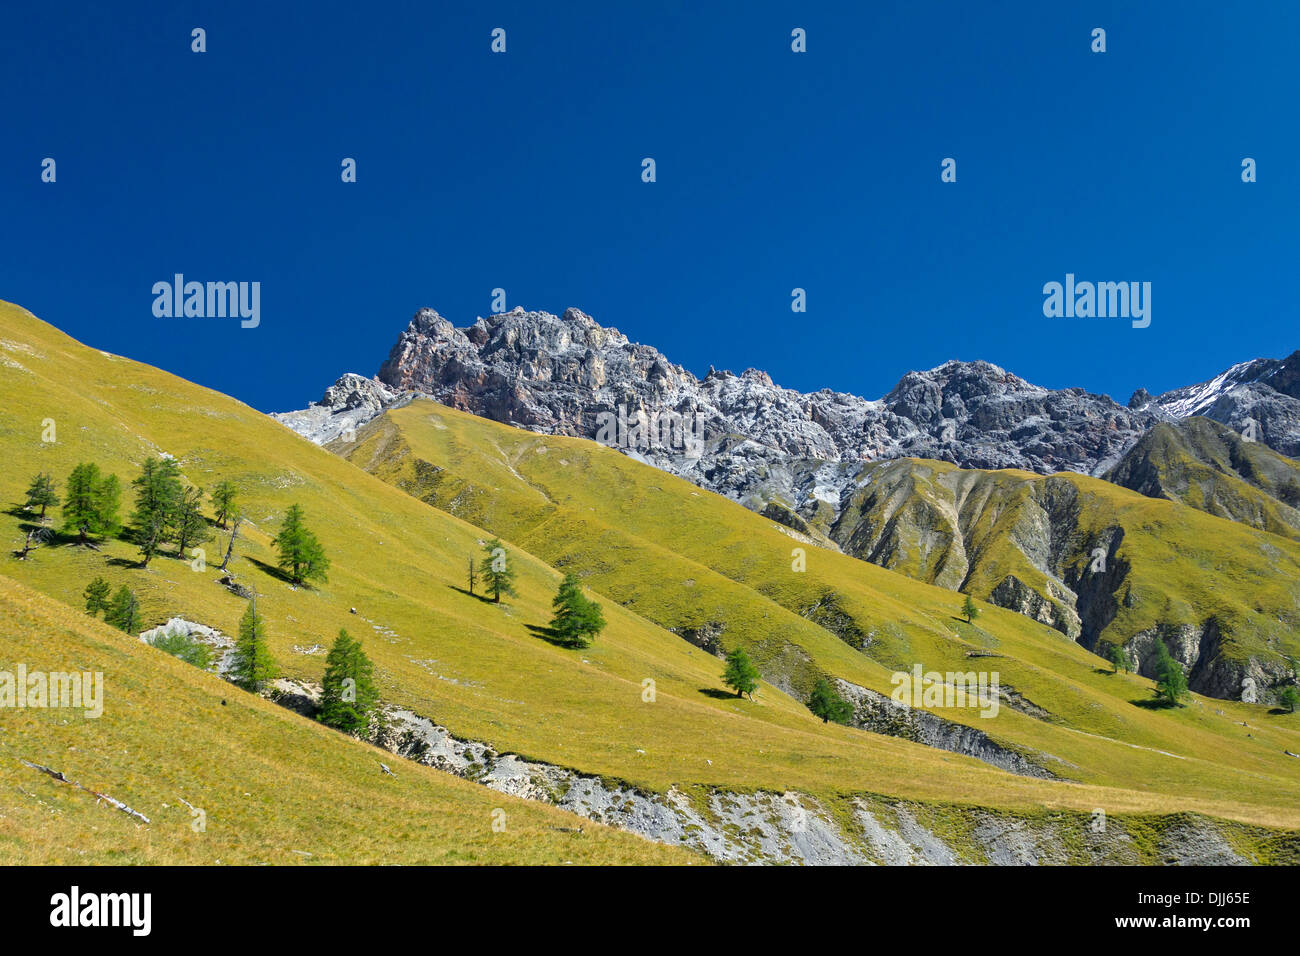 View over the mountain Piz Fier in Val Trupchun, Swiss National Park at Graubünden / Grisons in the Alps, Switzerland - Stock Image